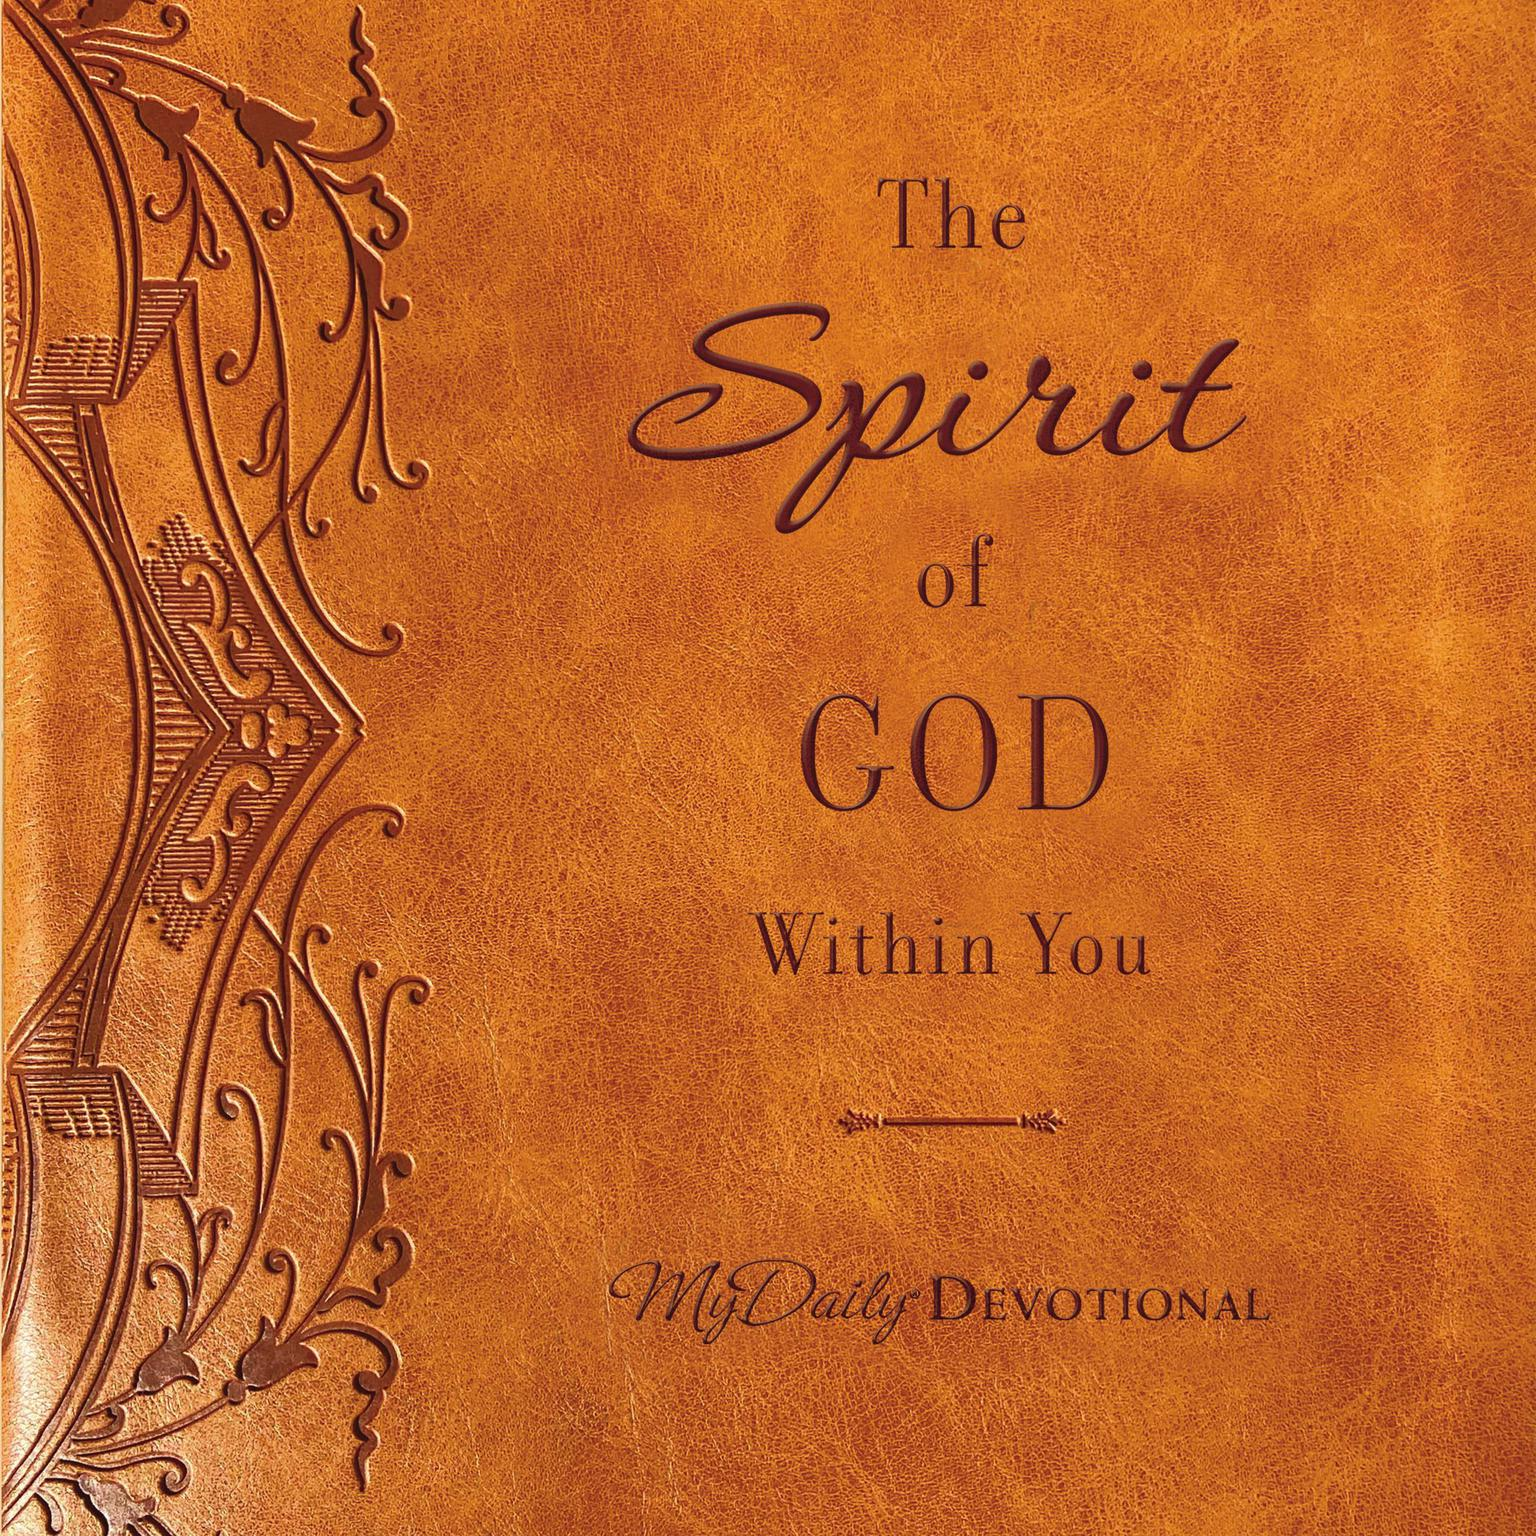 The Spirit of God Within You Audiobook, by Thomas Nelson